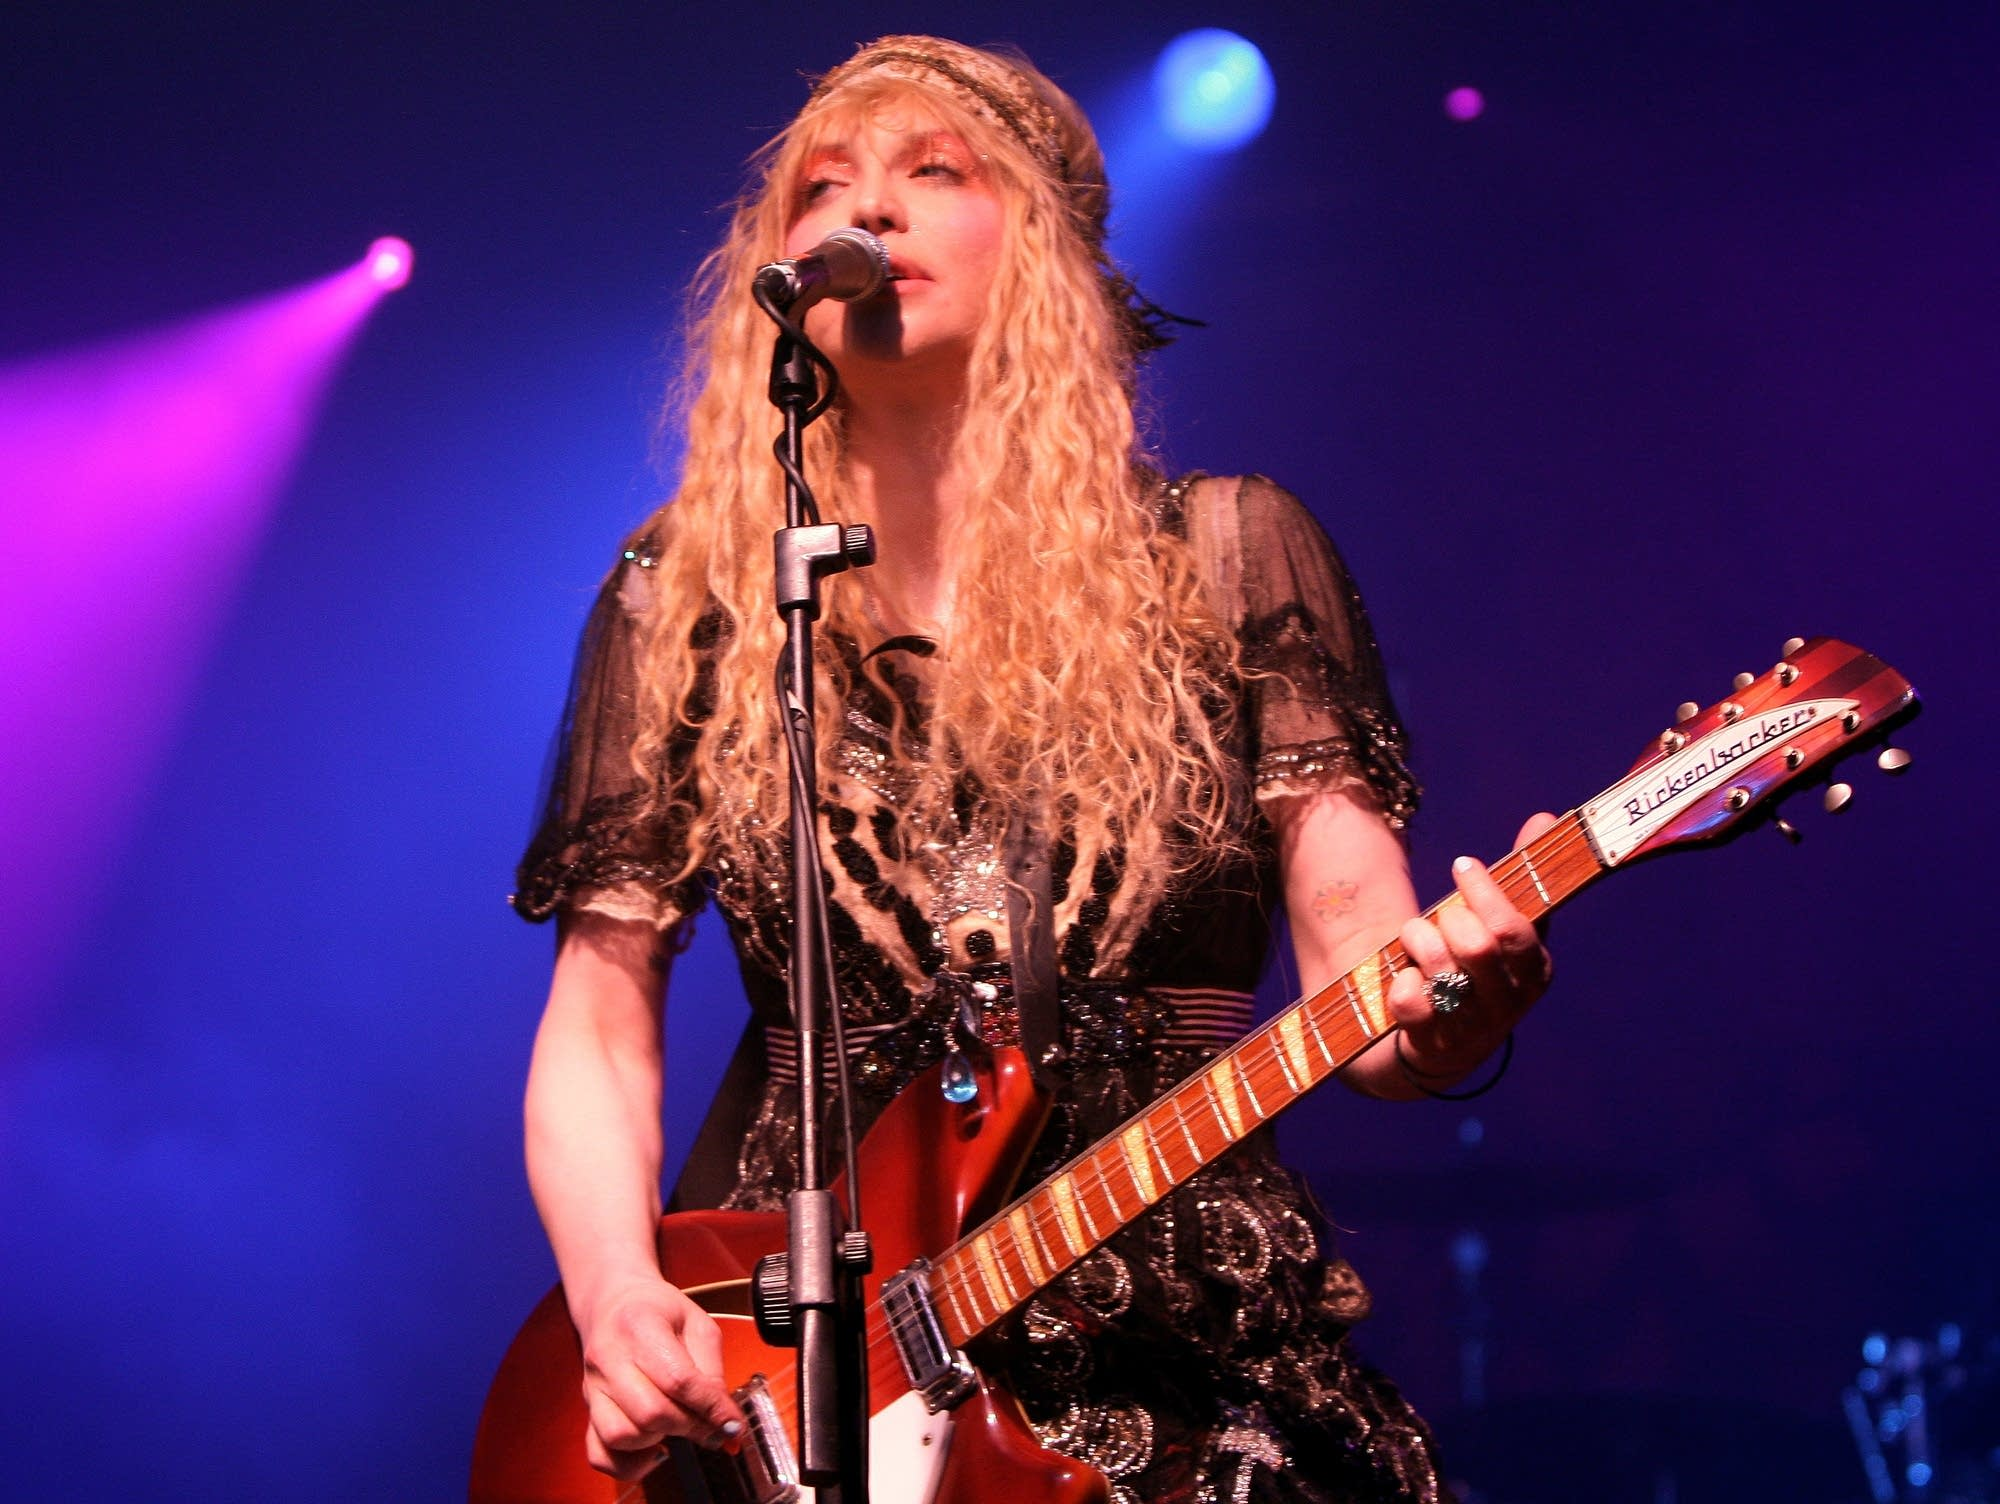 Courtney Love of Hole performs in Milan